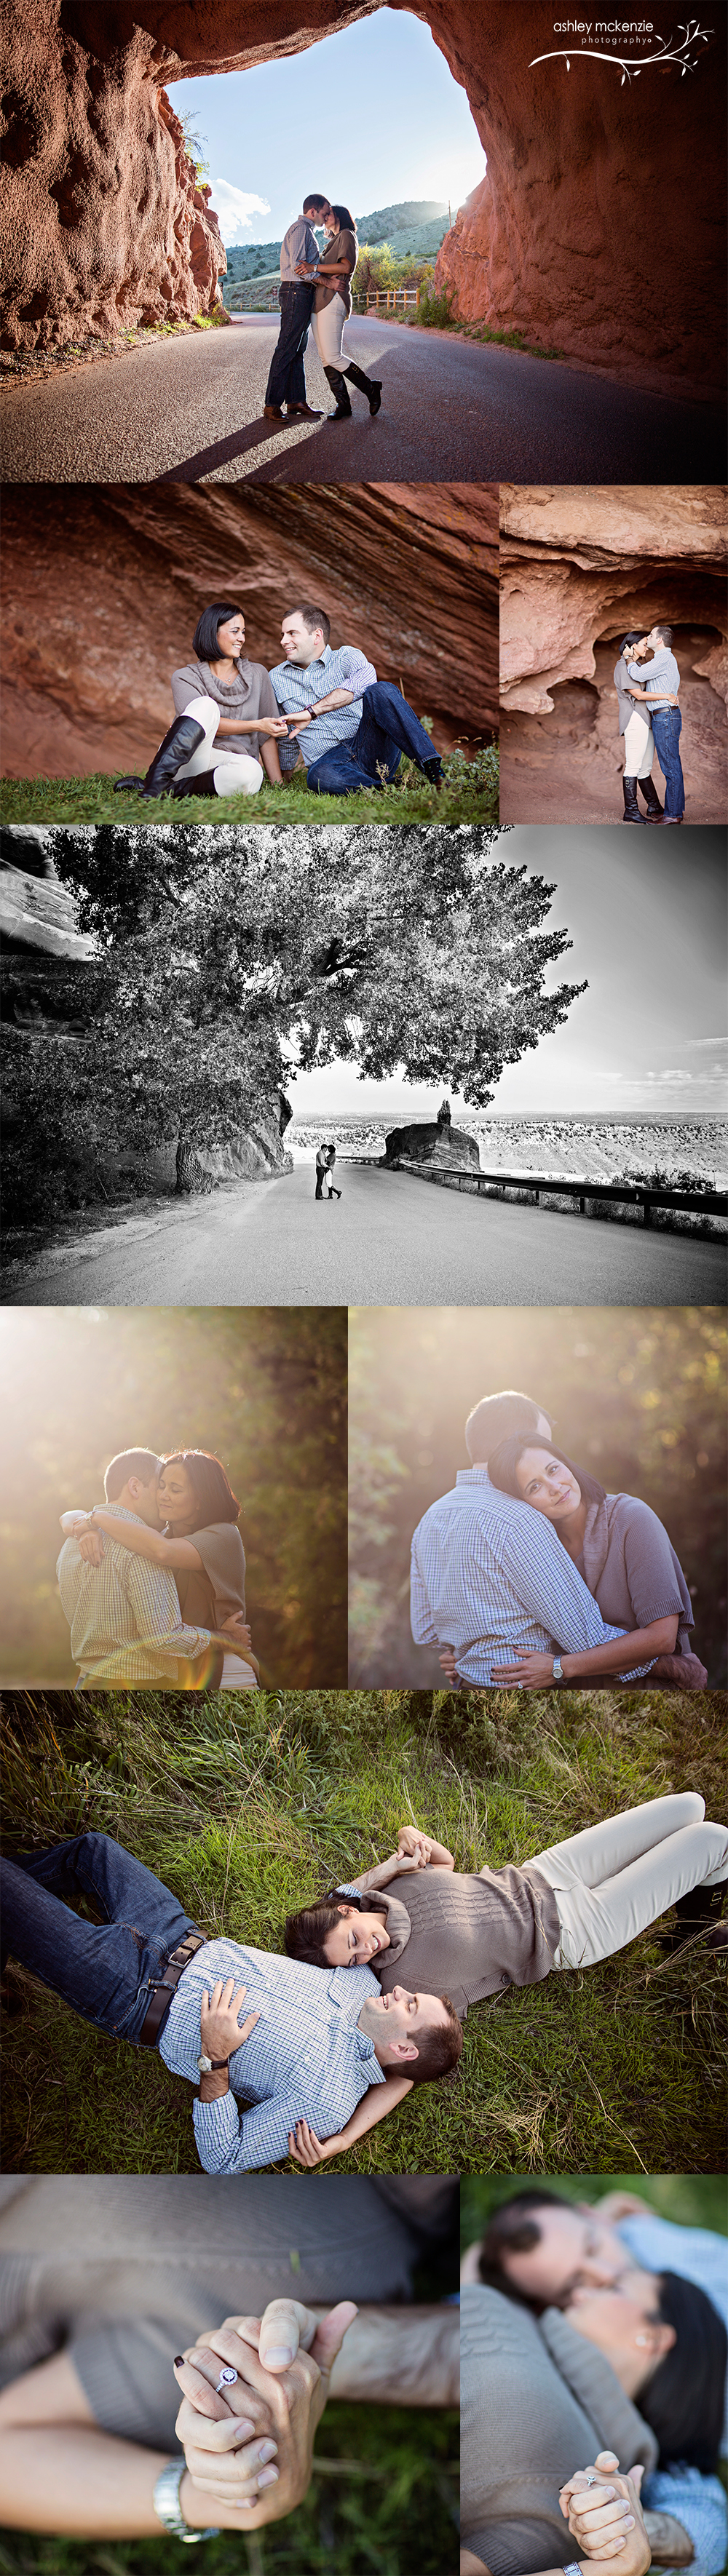 Engagement Photography by Ashley McKenzie Photography in Morrison, CO